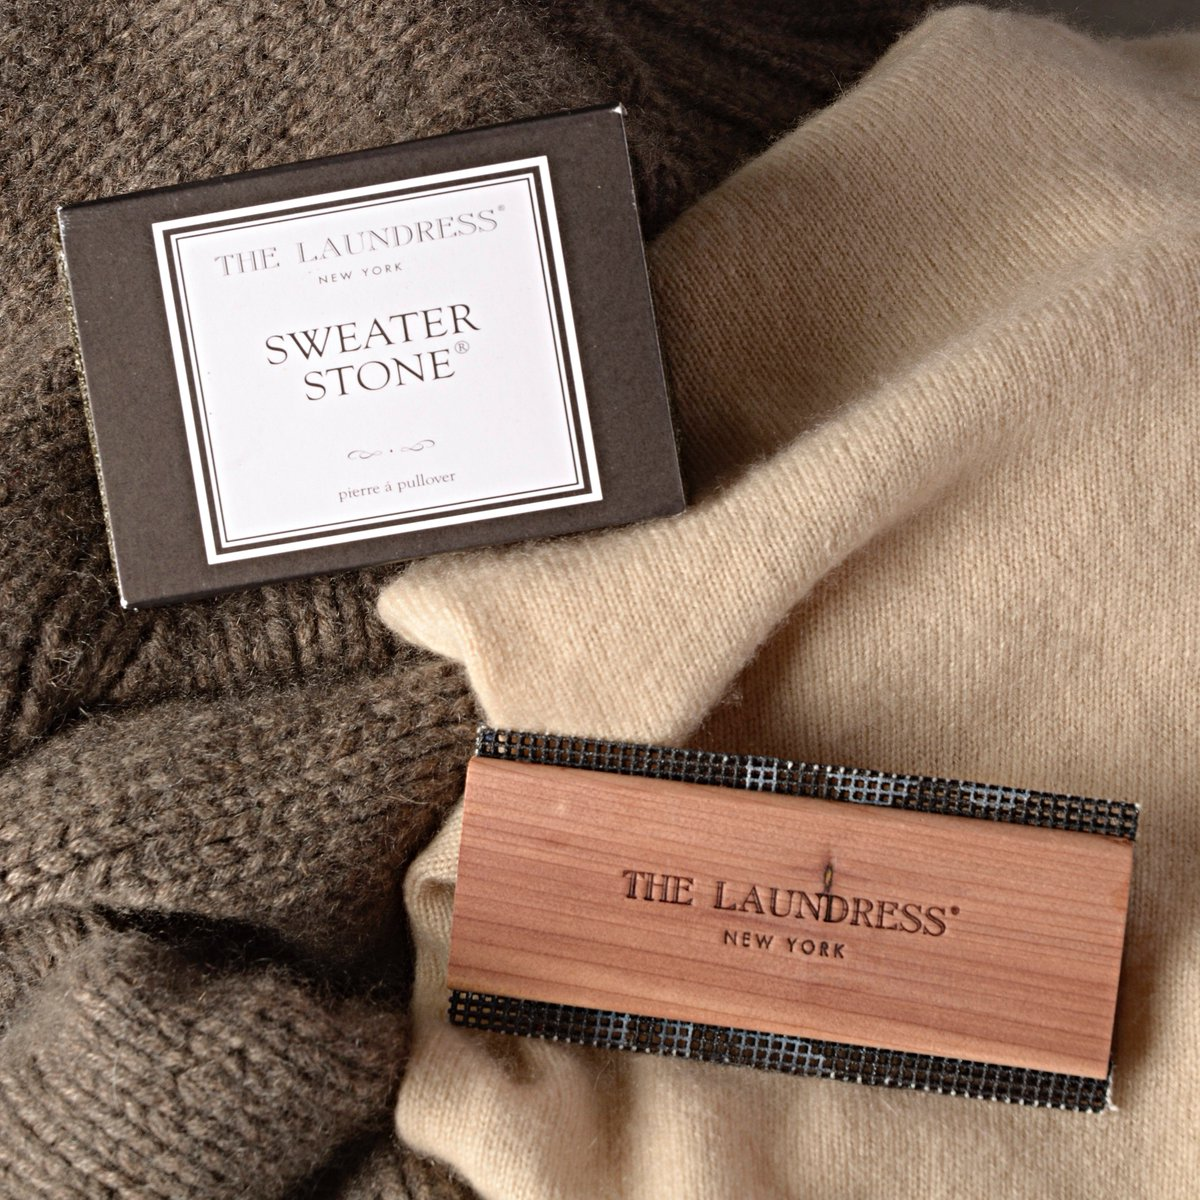 The Laundress On Twitter Both Sweater Comb And Stone Are Our Top Tools To De Pill Revitalize Knits